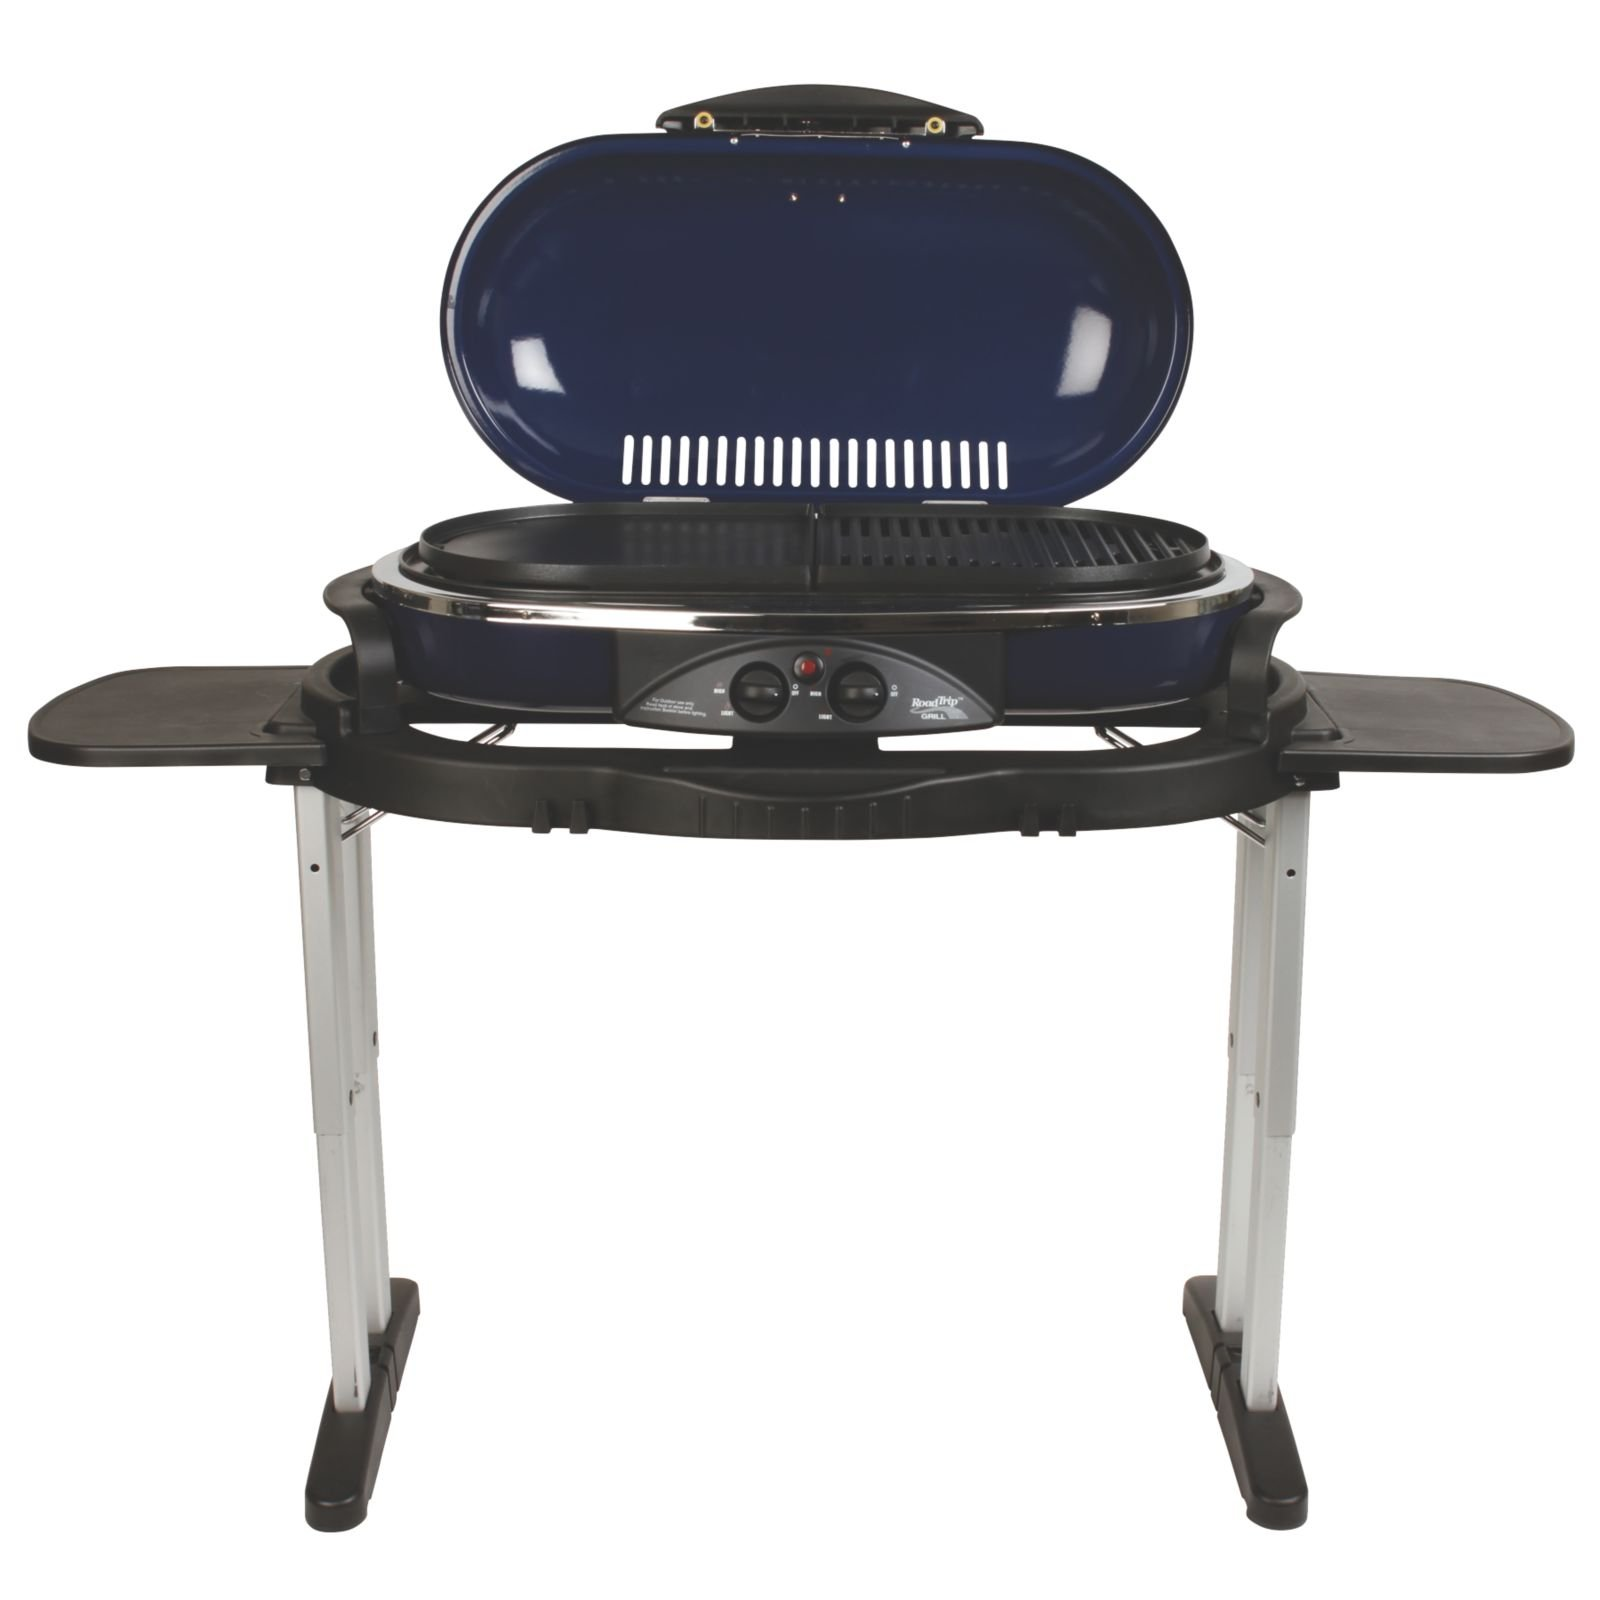 Coleman Roadtrip LX Propane Grill by Coleman